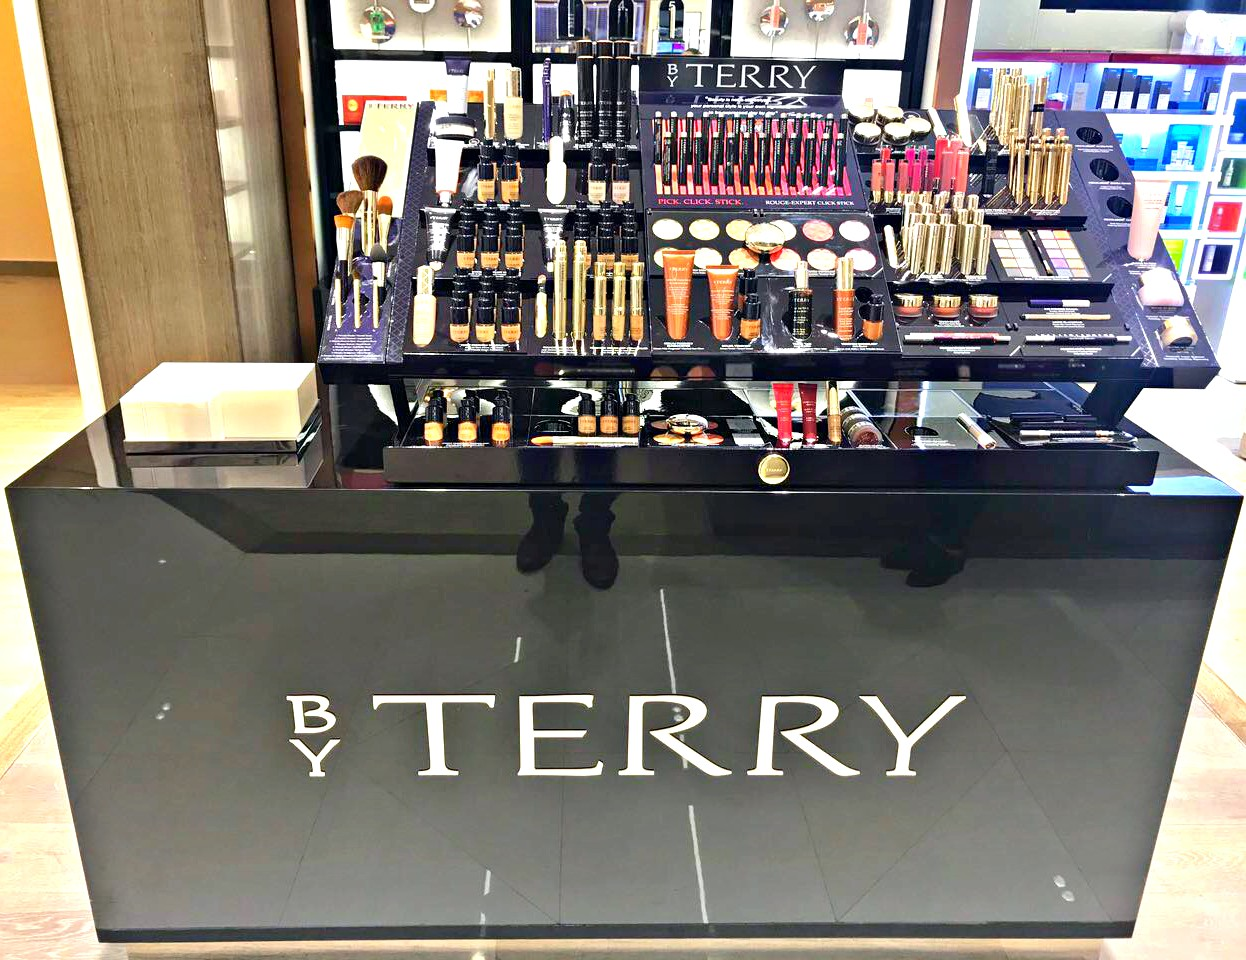 By Terry | Cosmetics | 474-17, Sprecher Berrier Group of Companies, By Terry, Shop-In-Shops, Areej | Doha Festival City | Doha